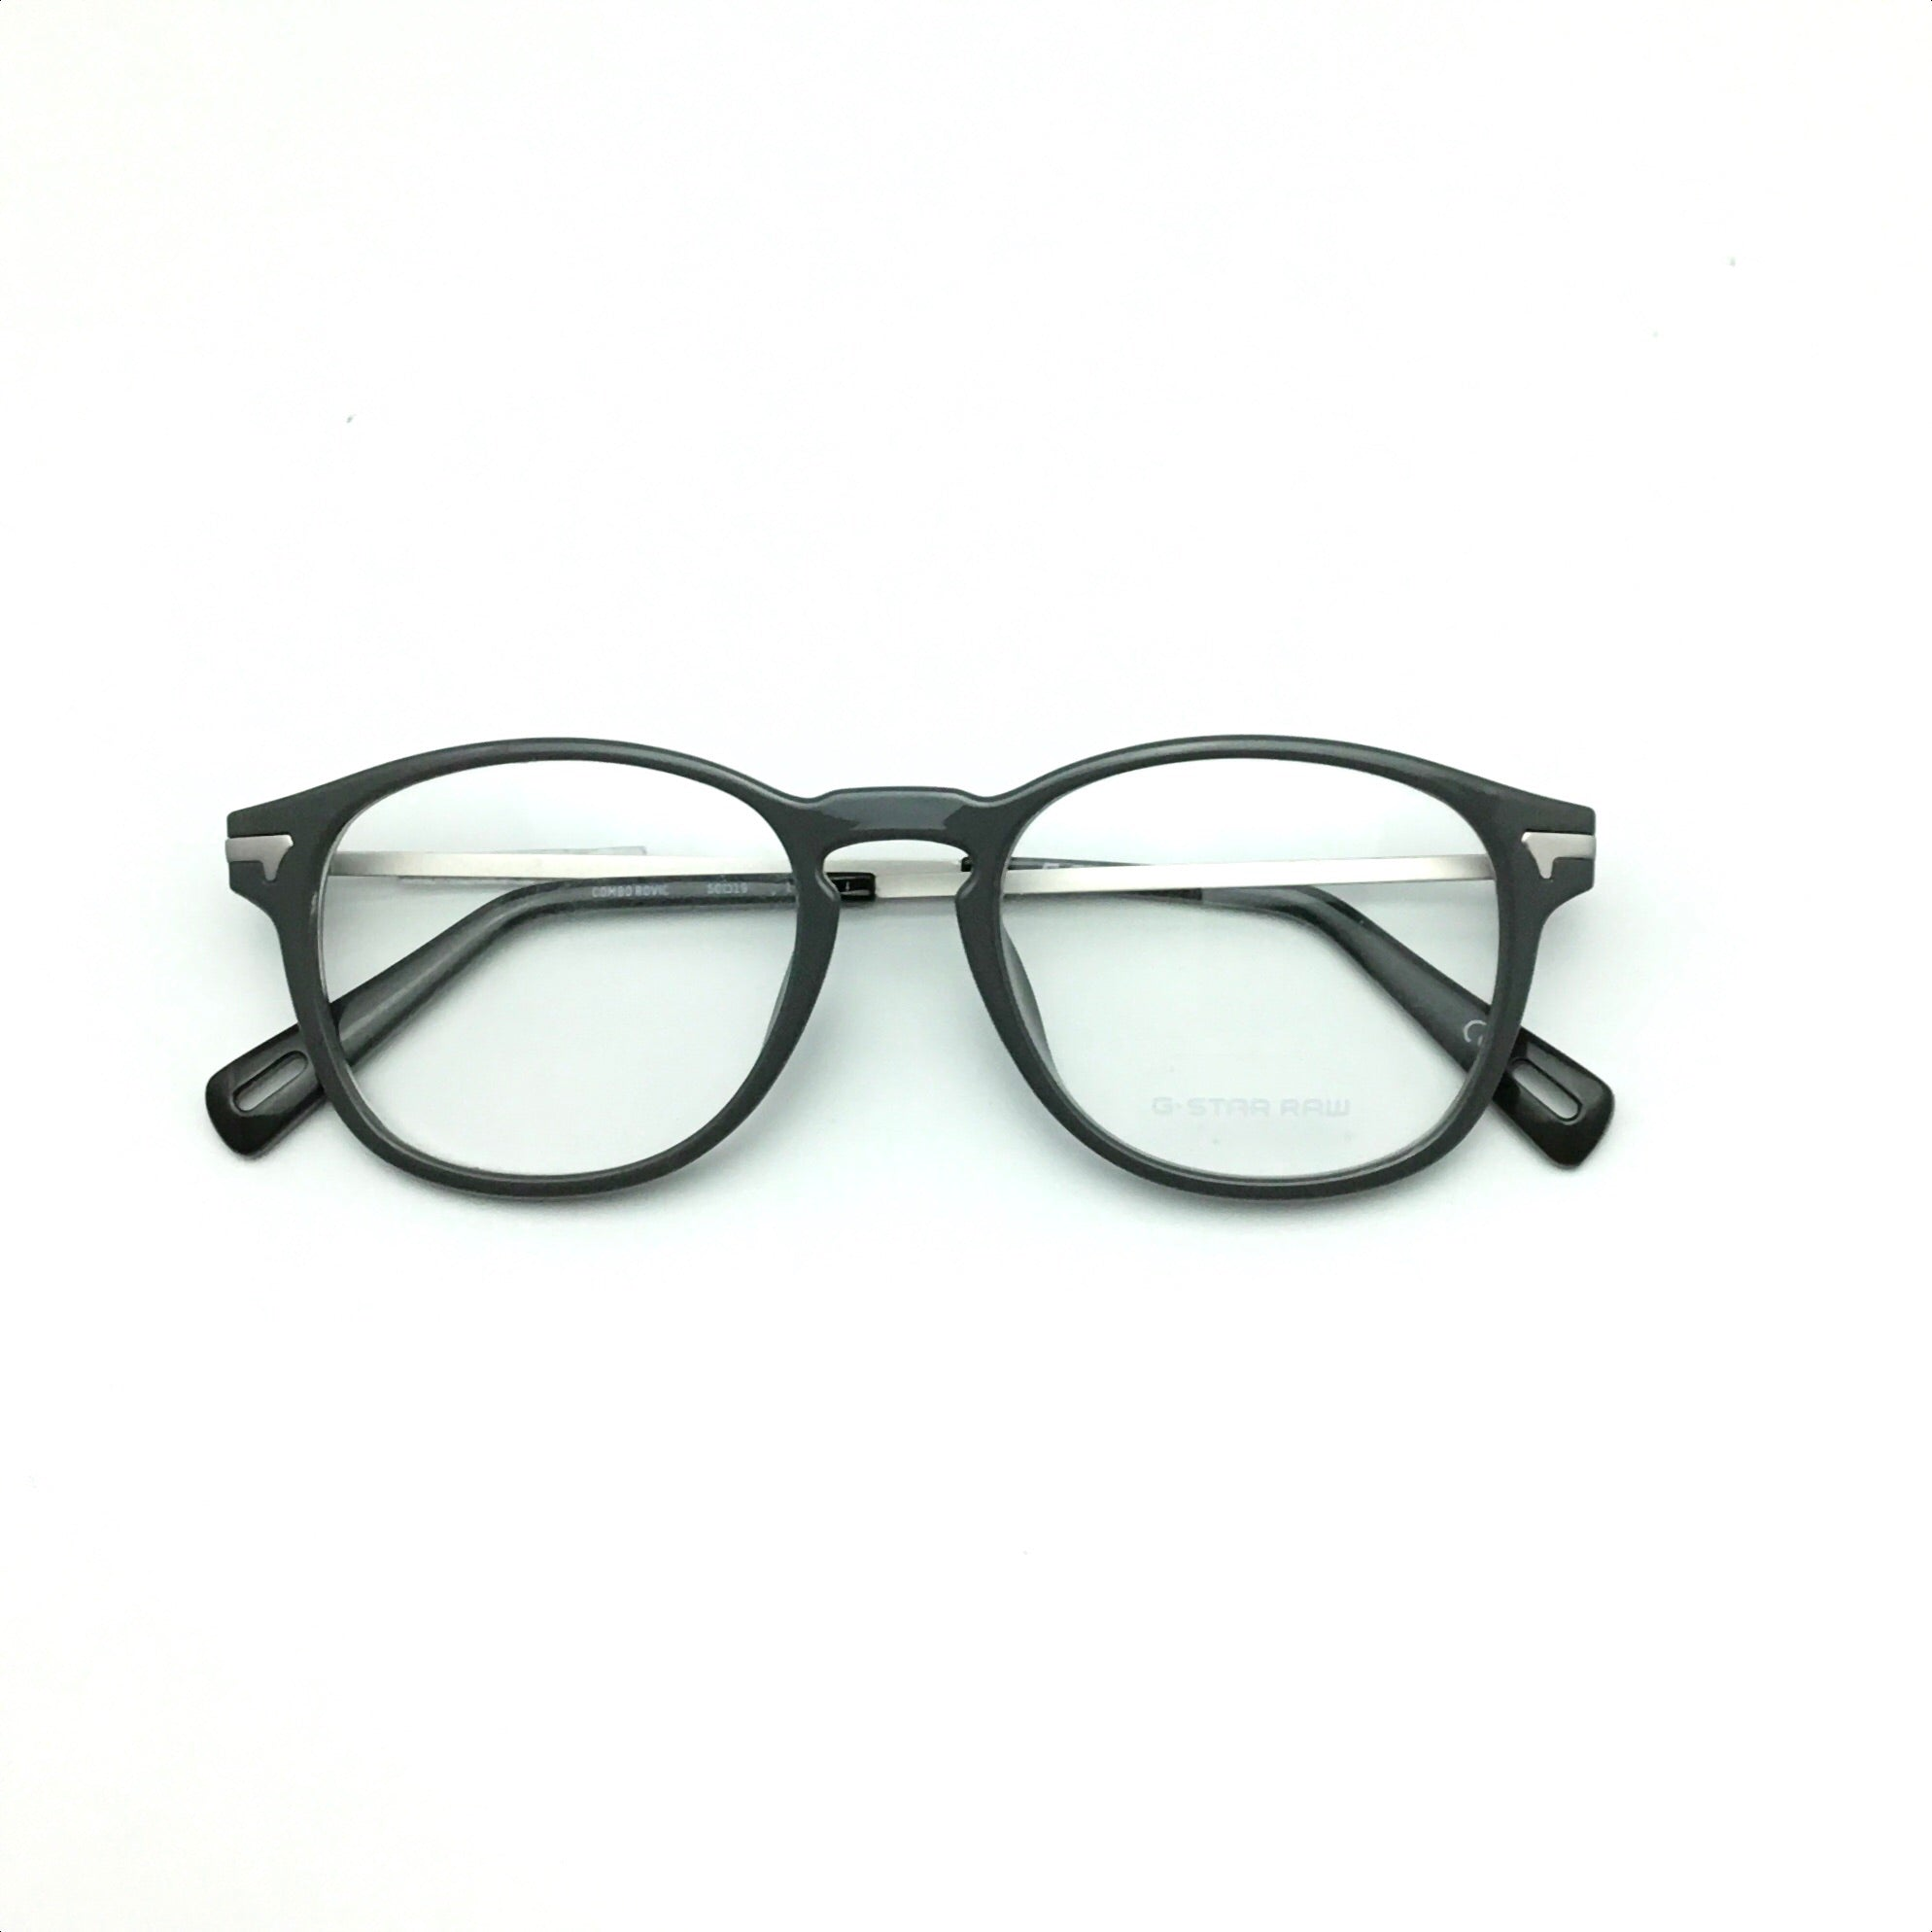 G Star Glasses $119 Special G7